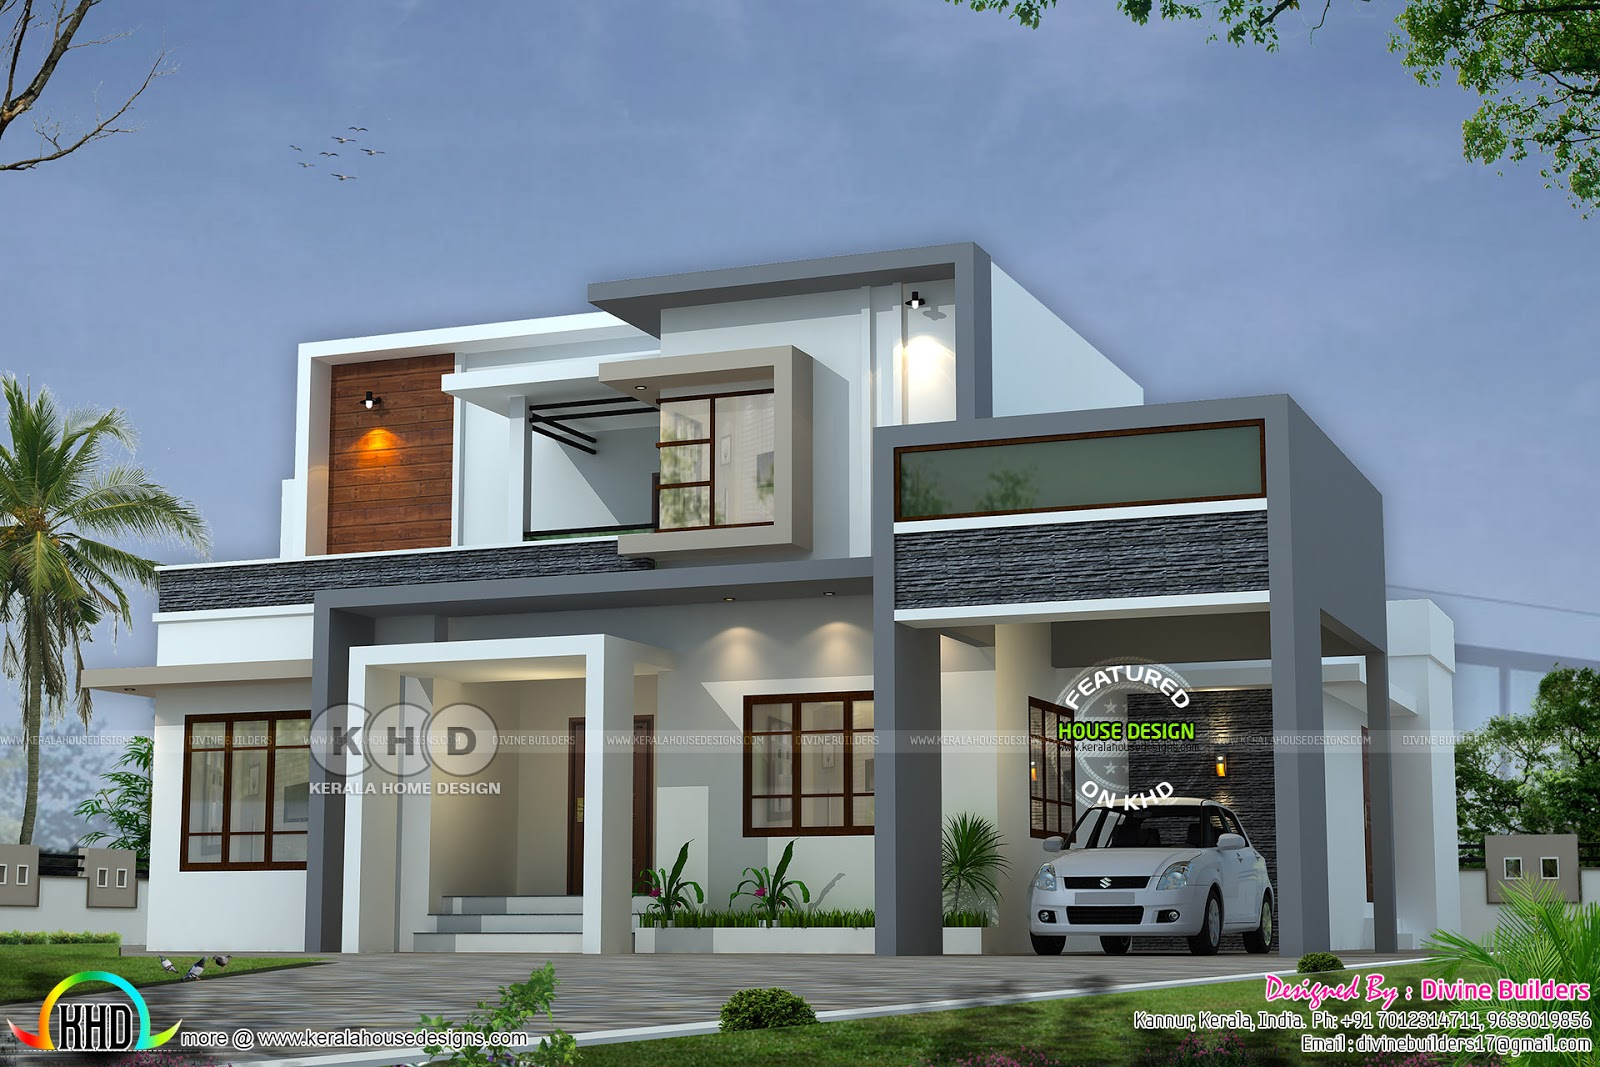 2017 kerala home design and floor plans for Home plans designs kerala